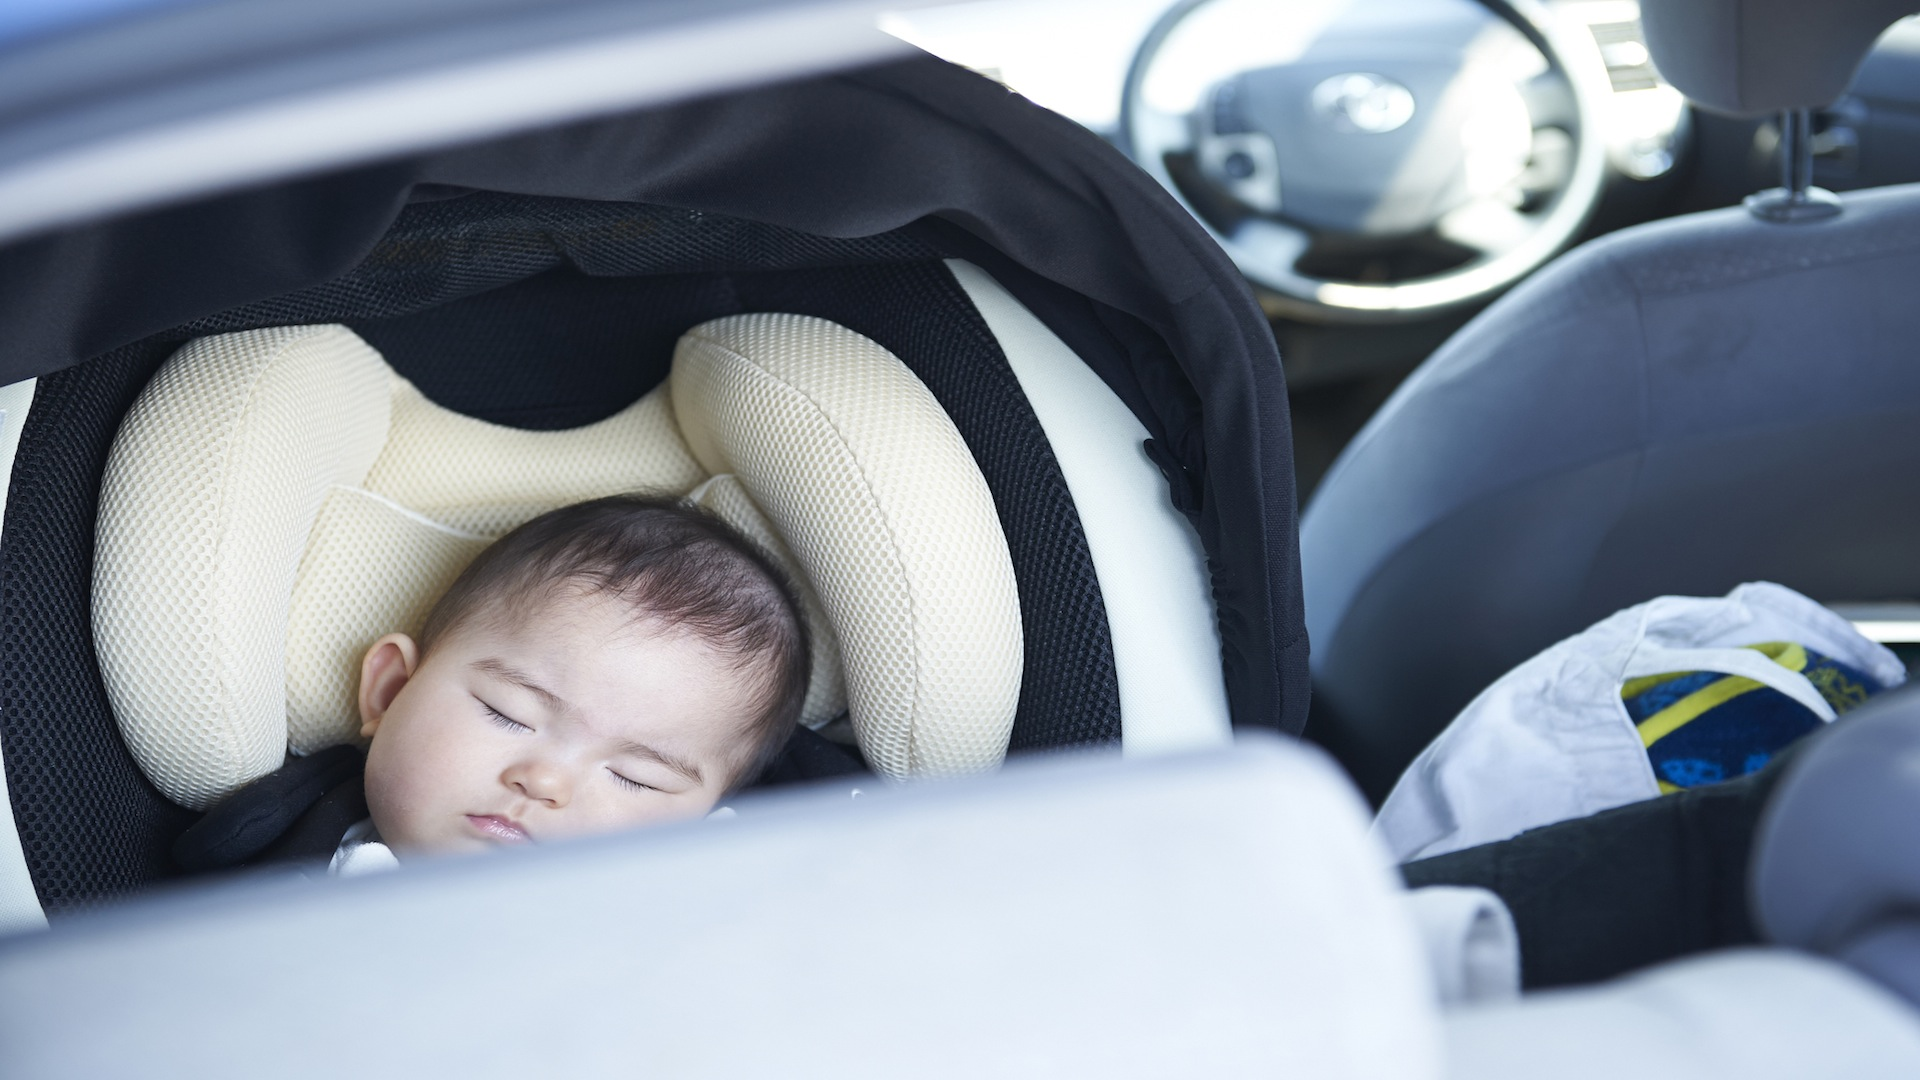 Baby asleep in his car seat